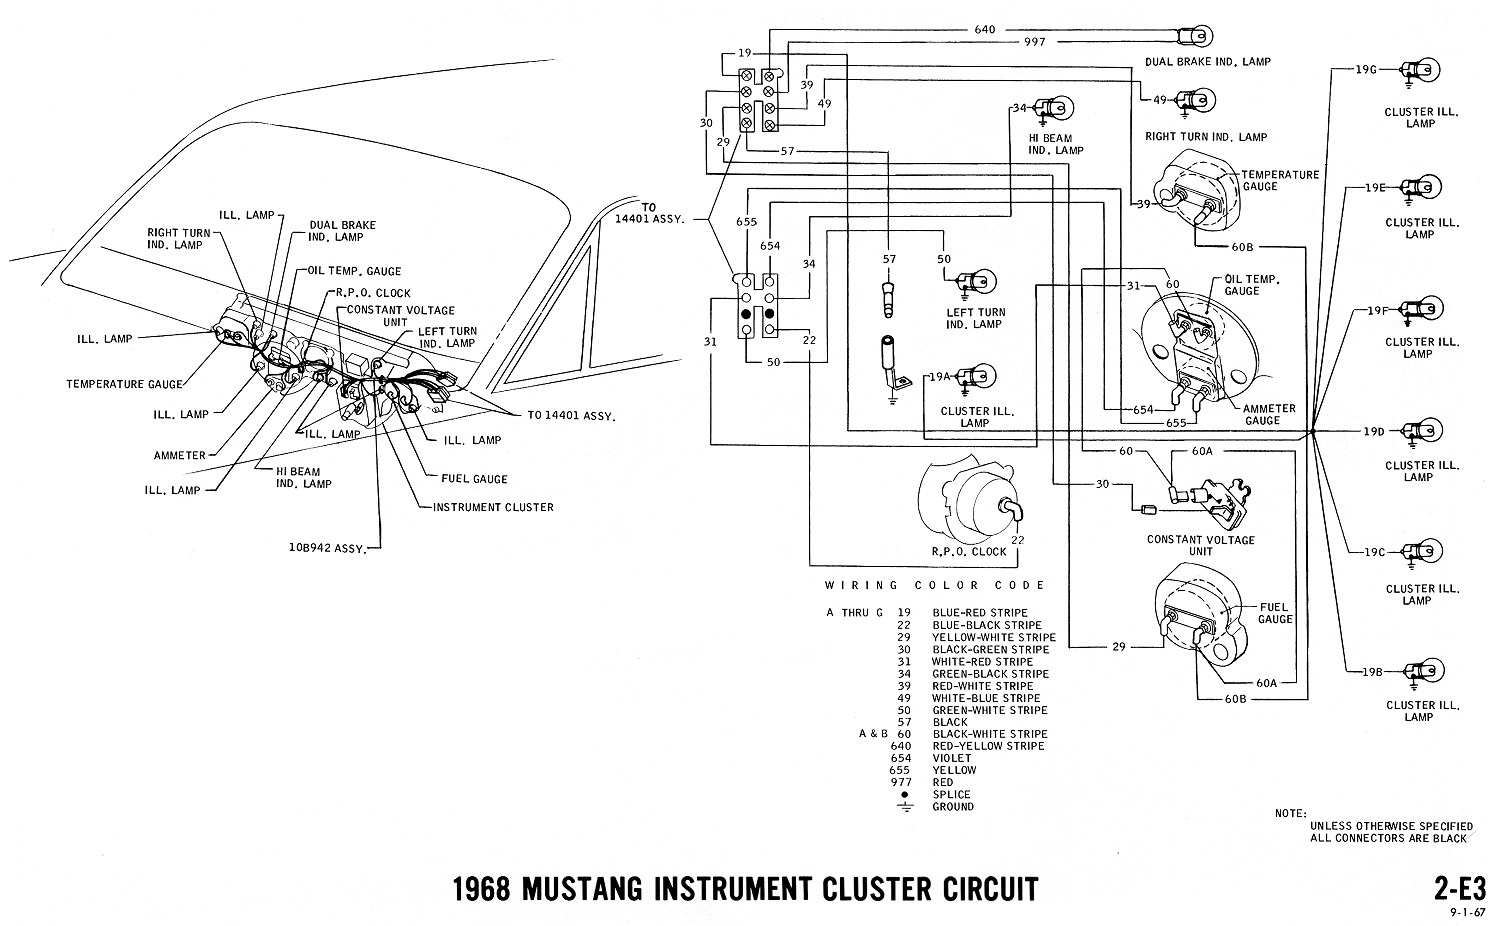 1968 mustang instrument wiring diagram house wiring diagram symbols u2022 rh maxturner co